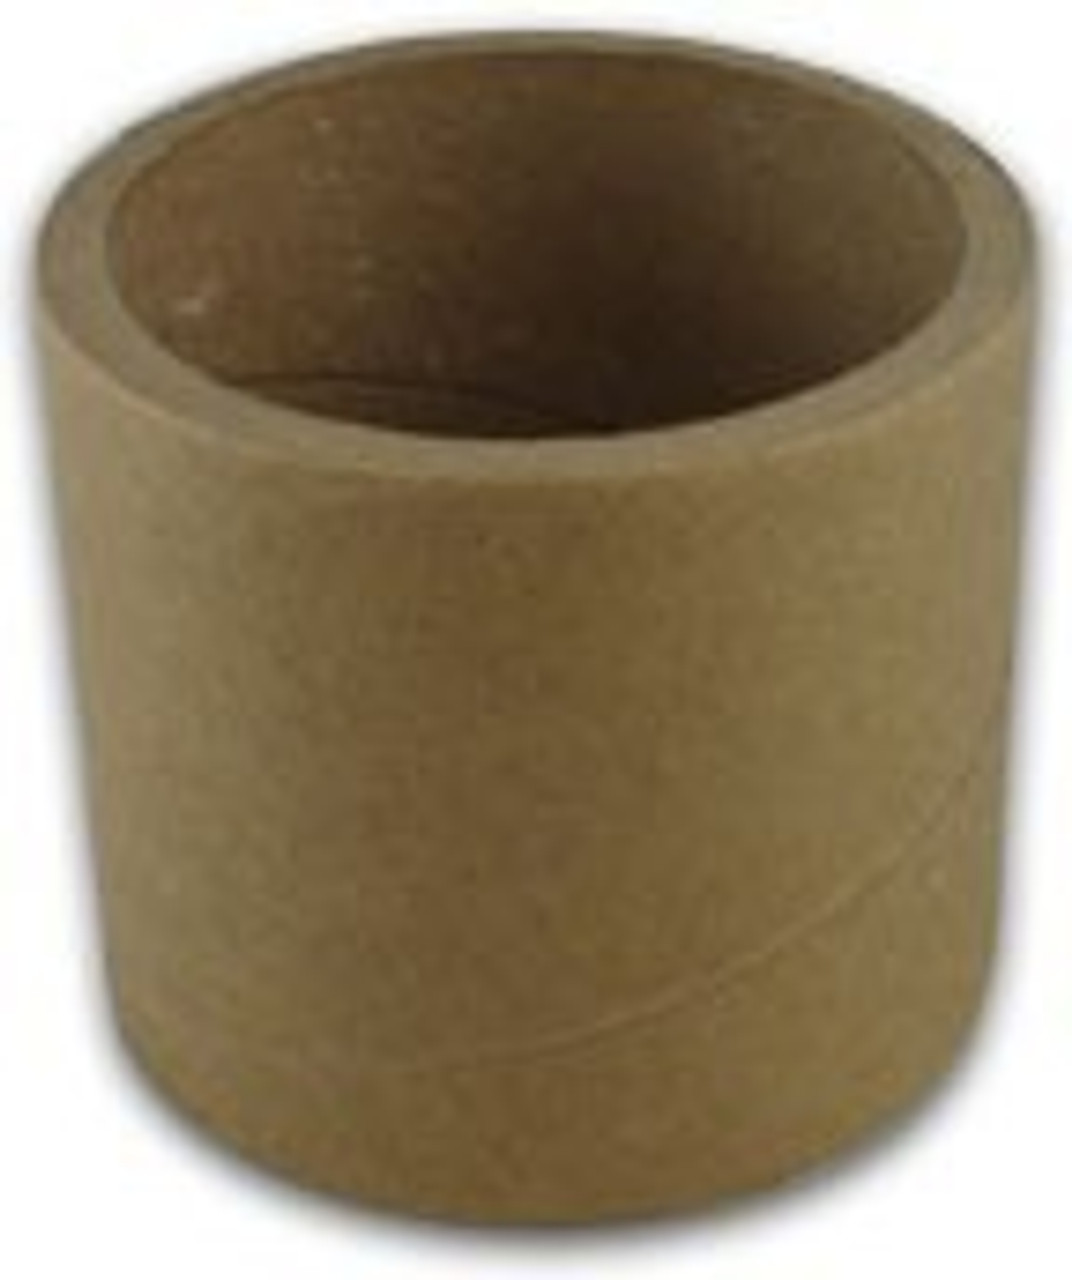 "Empty Cores 3"" X 1 1/8"" wide - Box of 50 